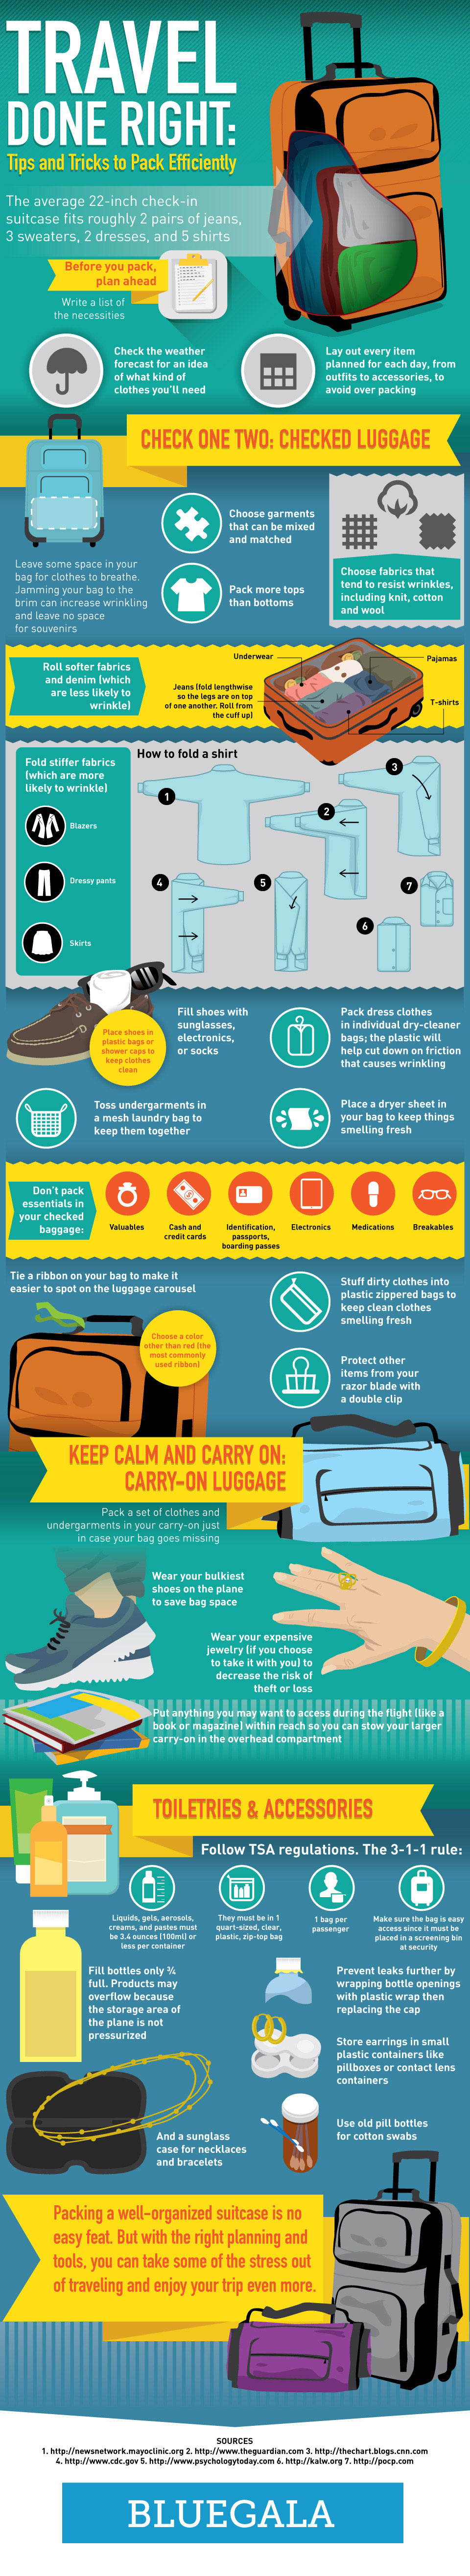 How to pack your bags for traveling?